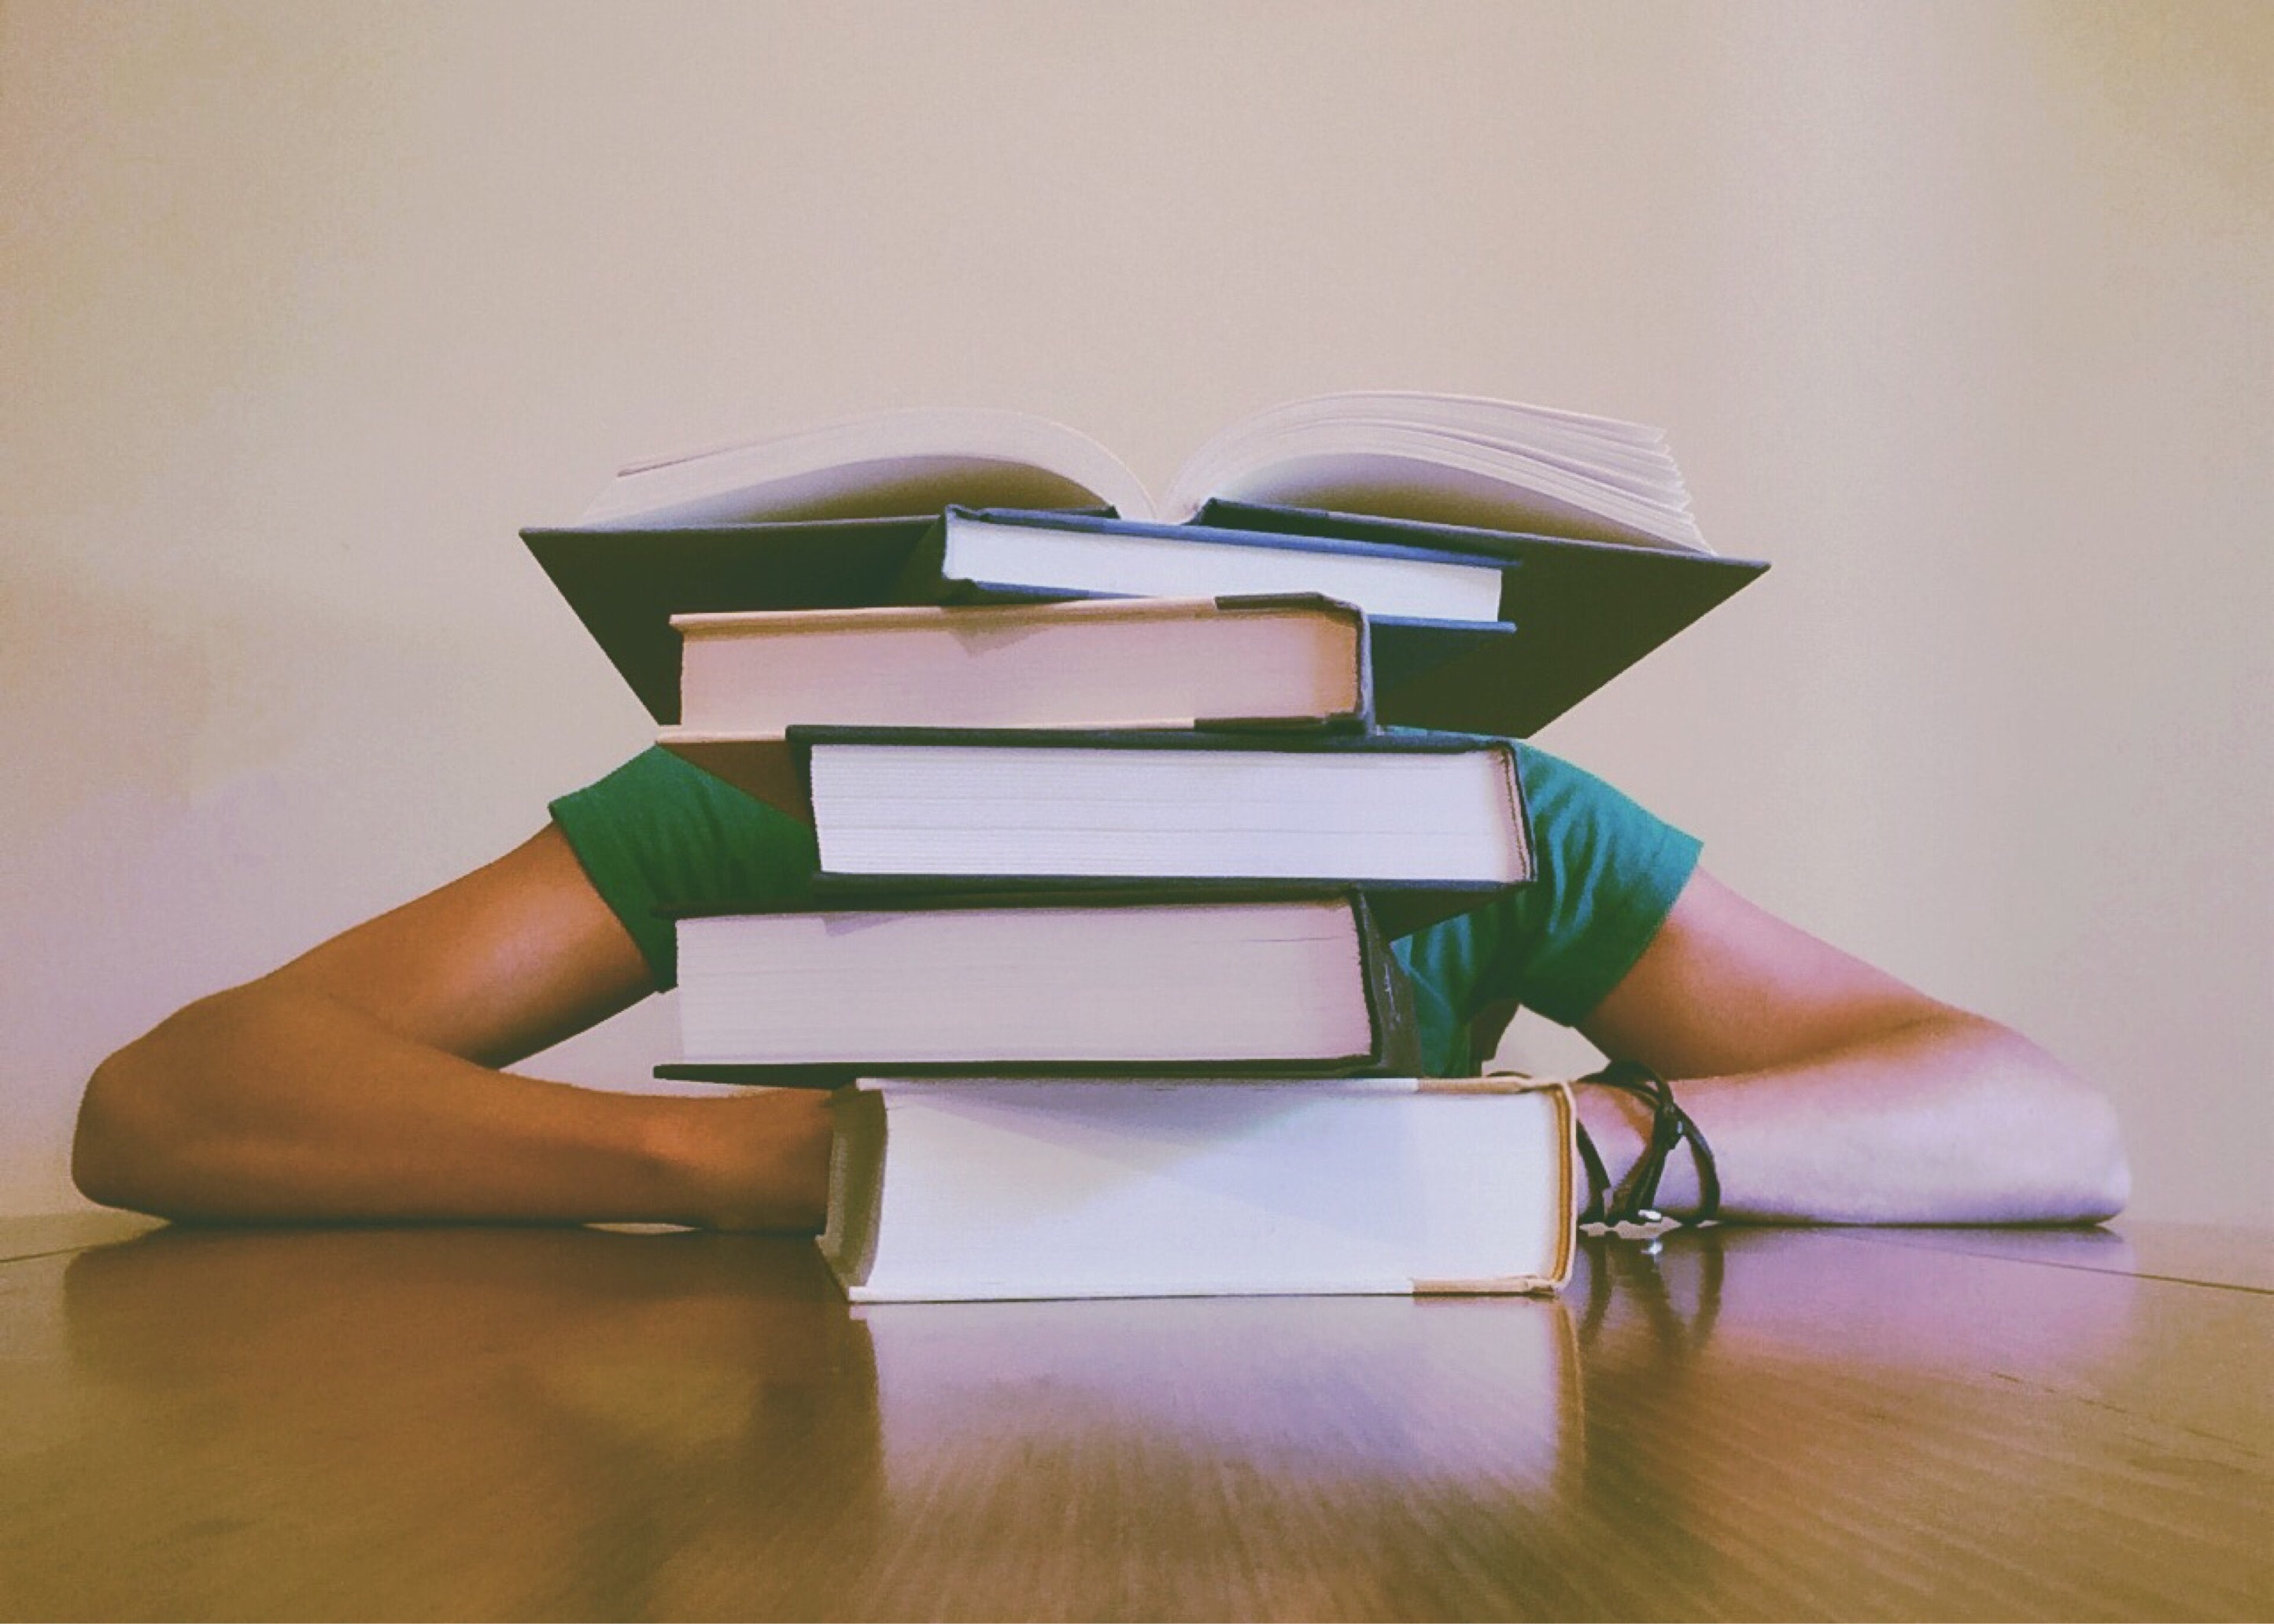 Stock image of a person hiding behind a stack of textbooks.